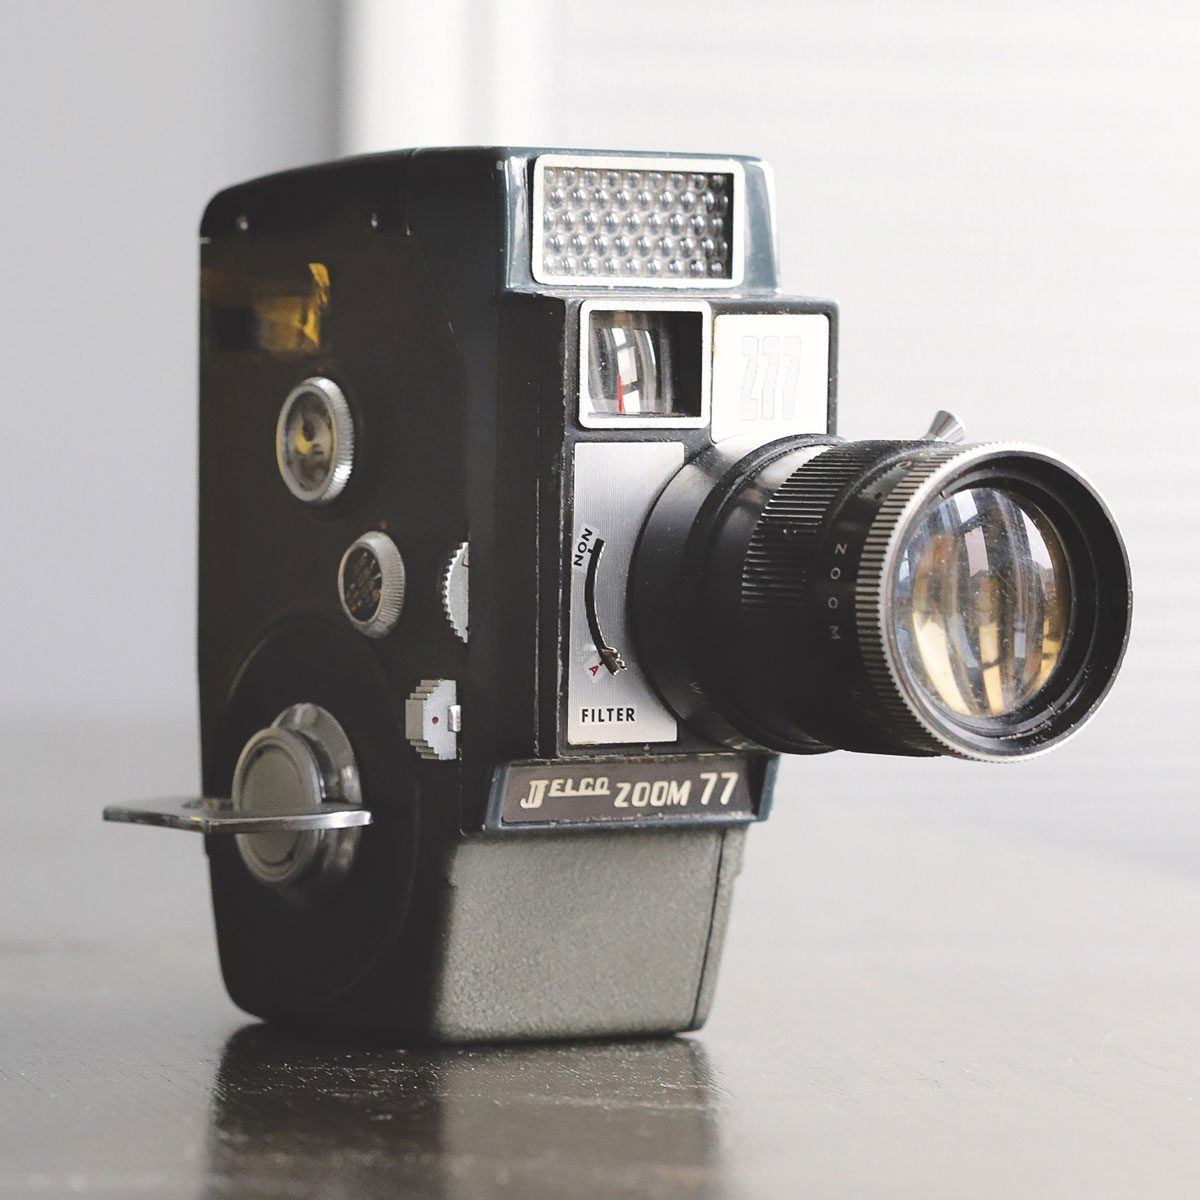 The Jelco Zoom 77 hand-cranked 8-mm movie camera